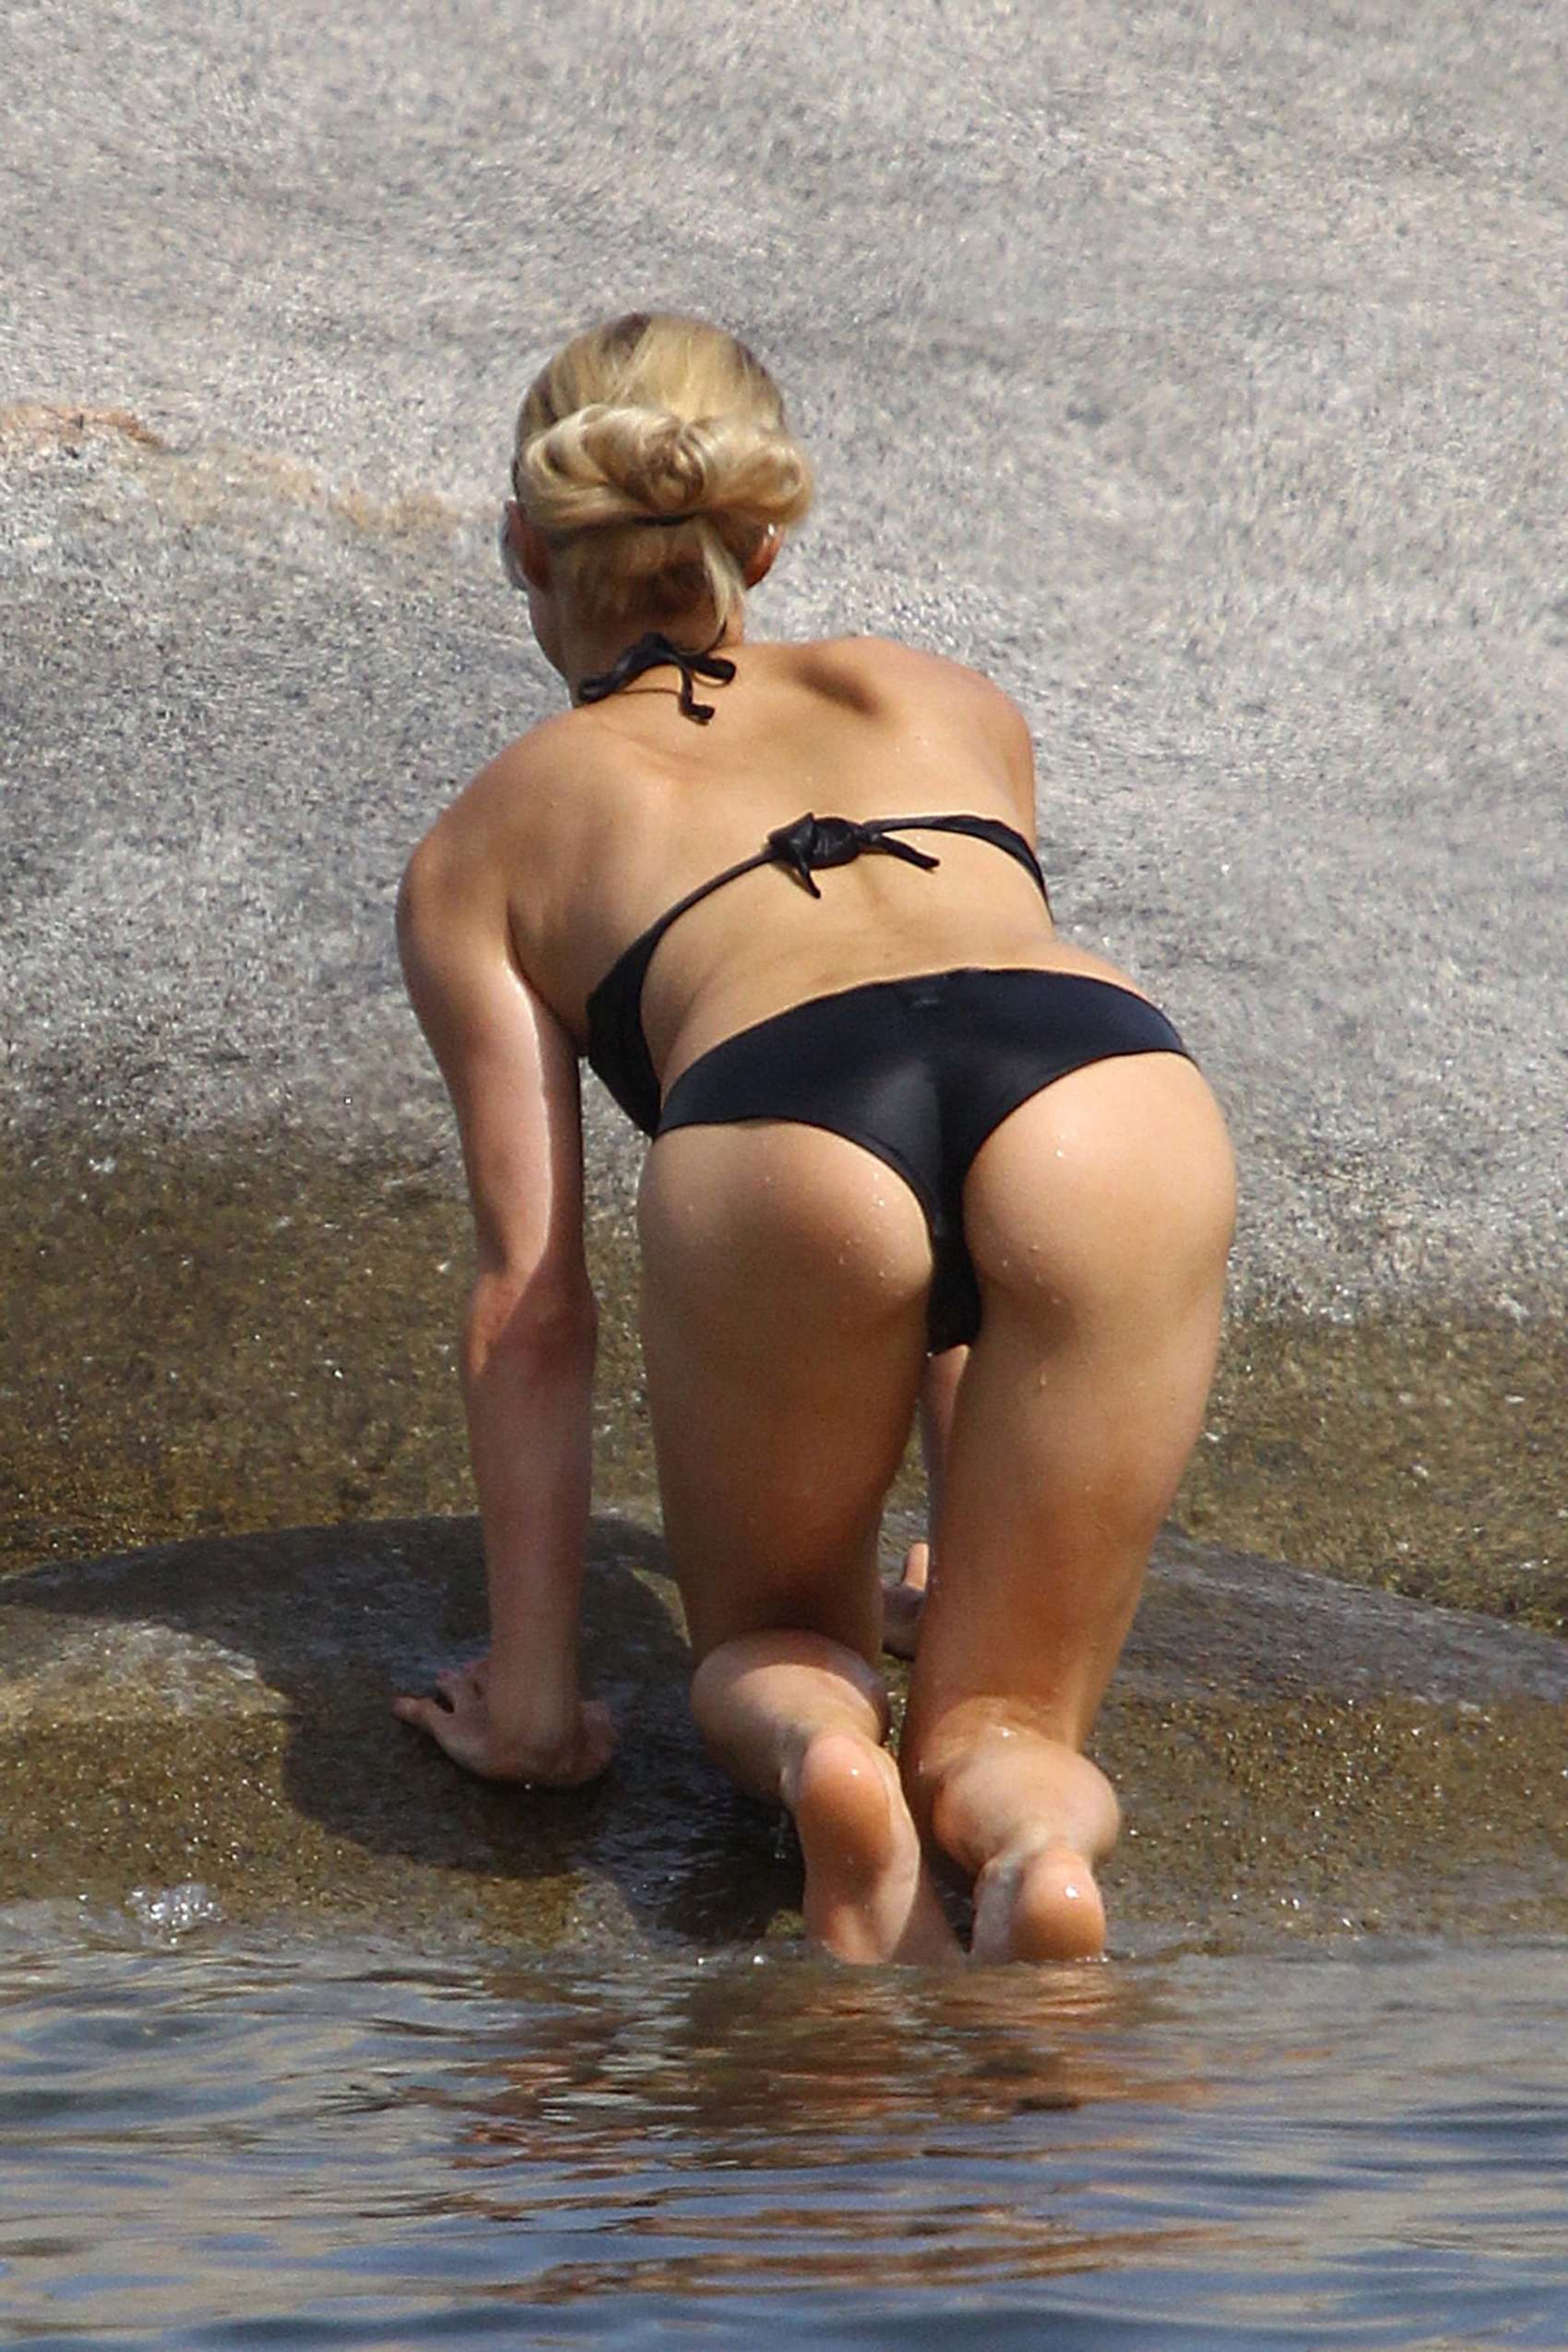 Wwe natalya neidhart hot